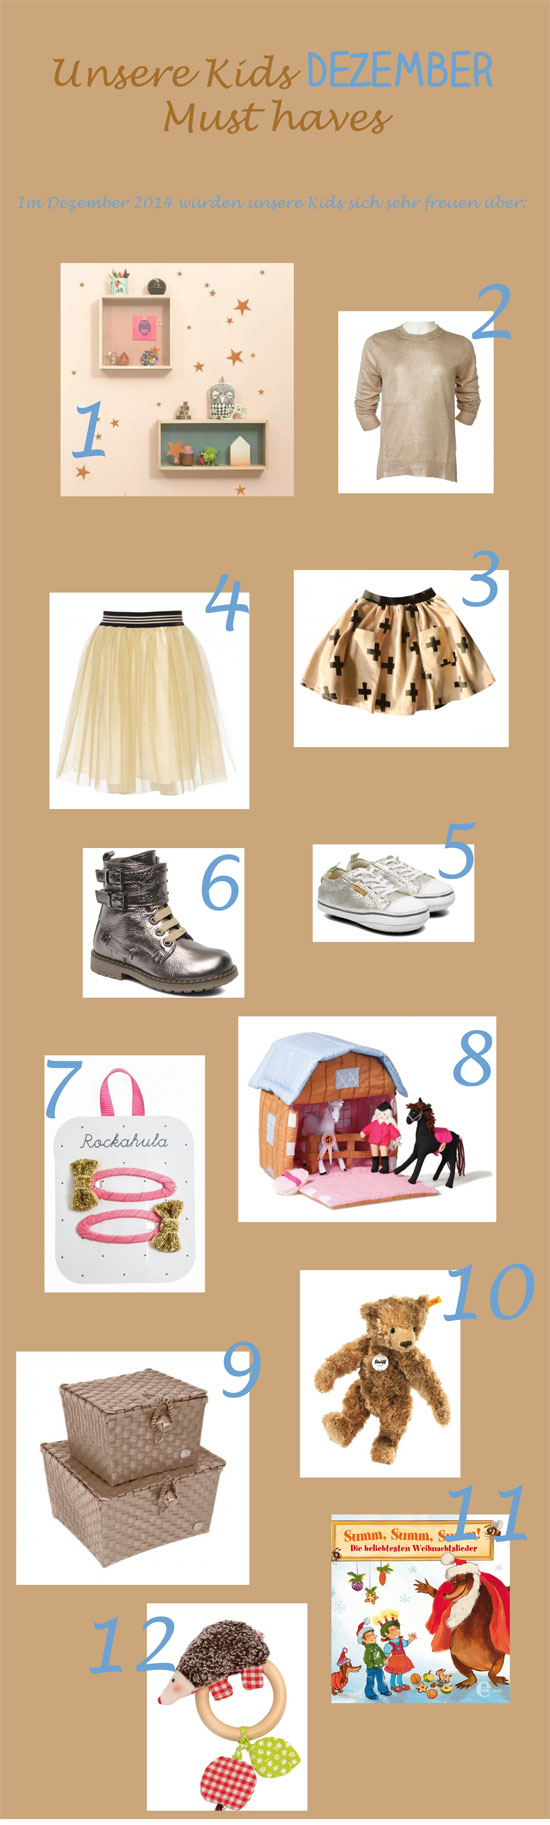 Kids-Dezember-Must-haves-2014